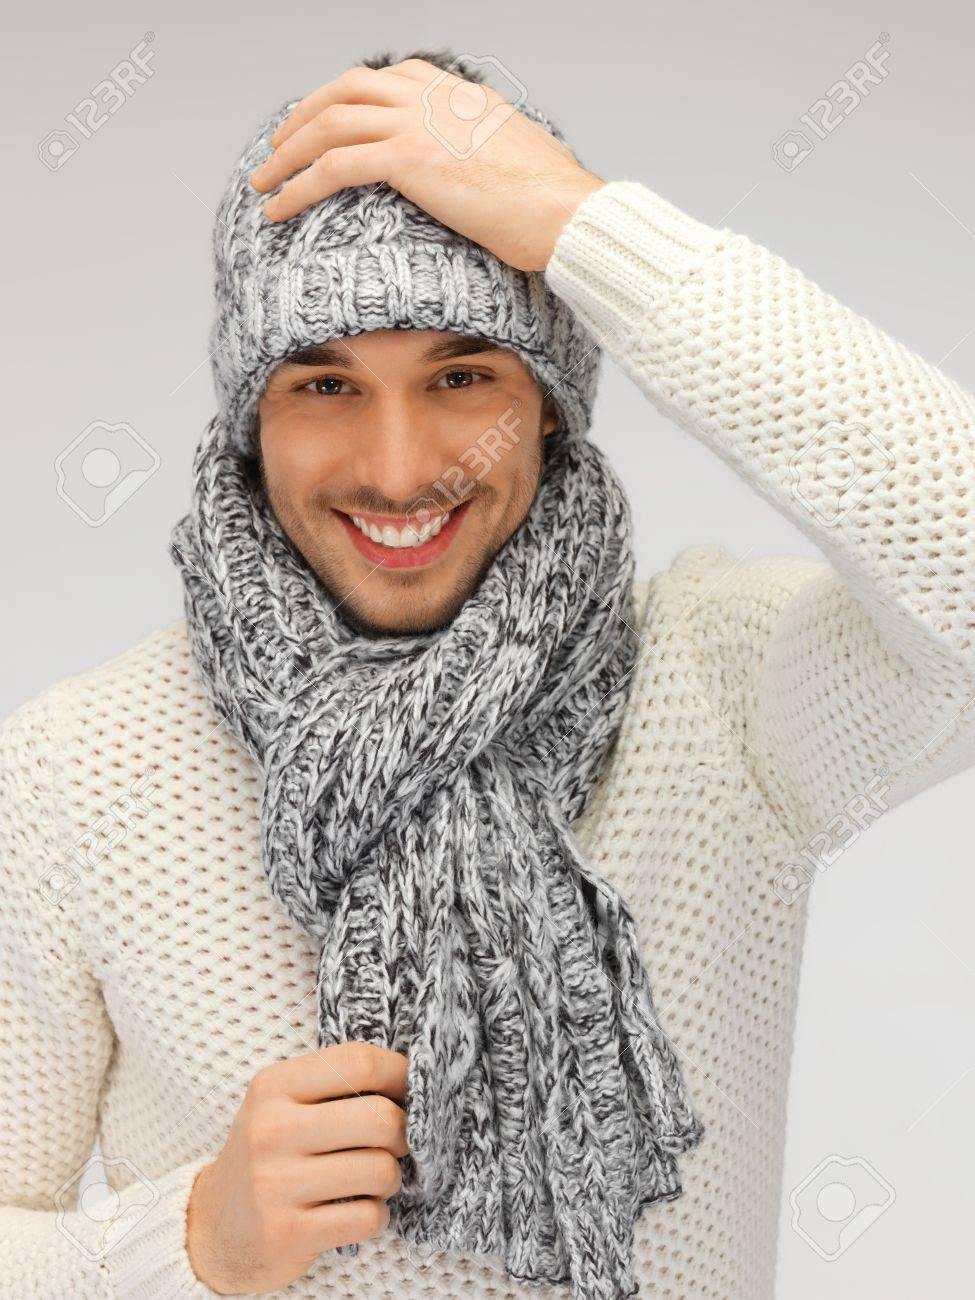 picture of handsome man in warm sweater, hat and scarf Stock Photo - 16216124